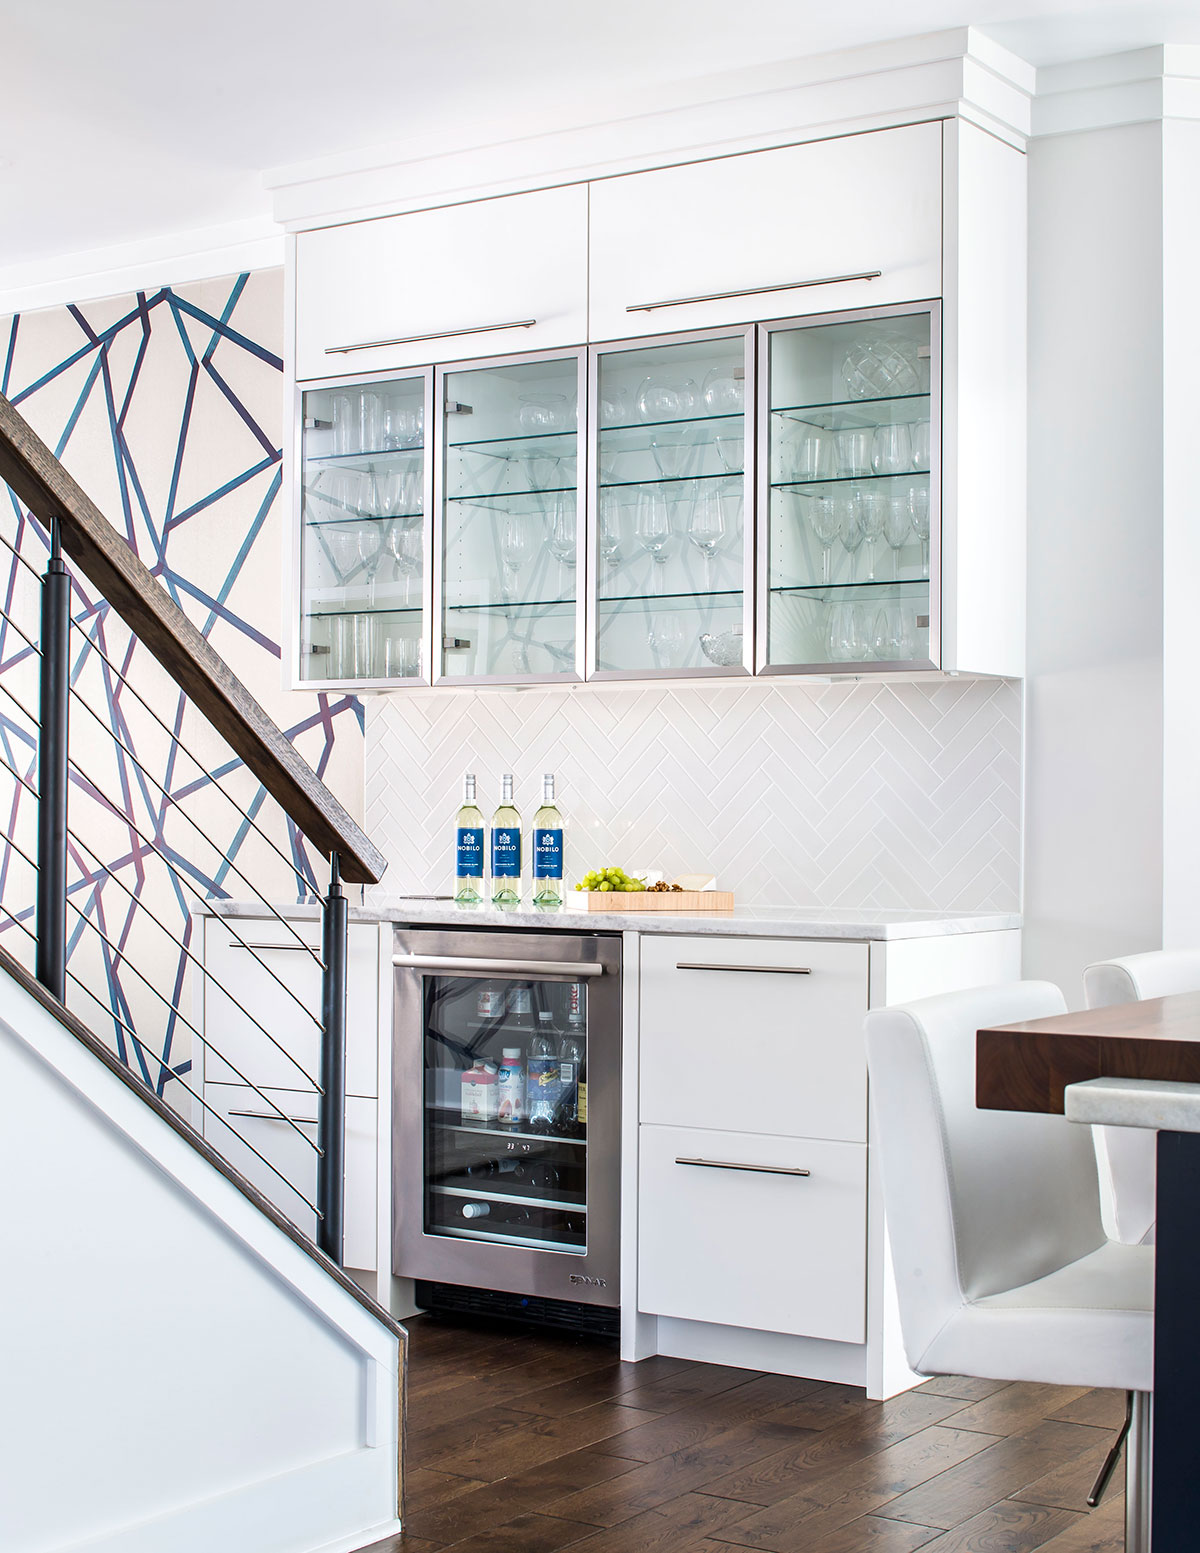 White built-in cabinetry with clear glass doors for storage of glassware